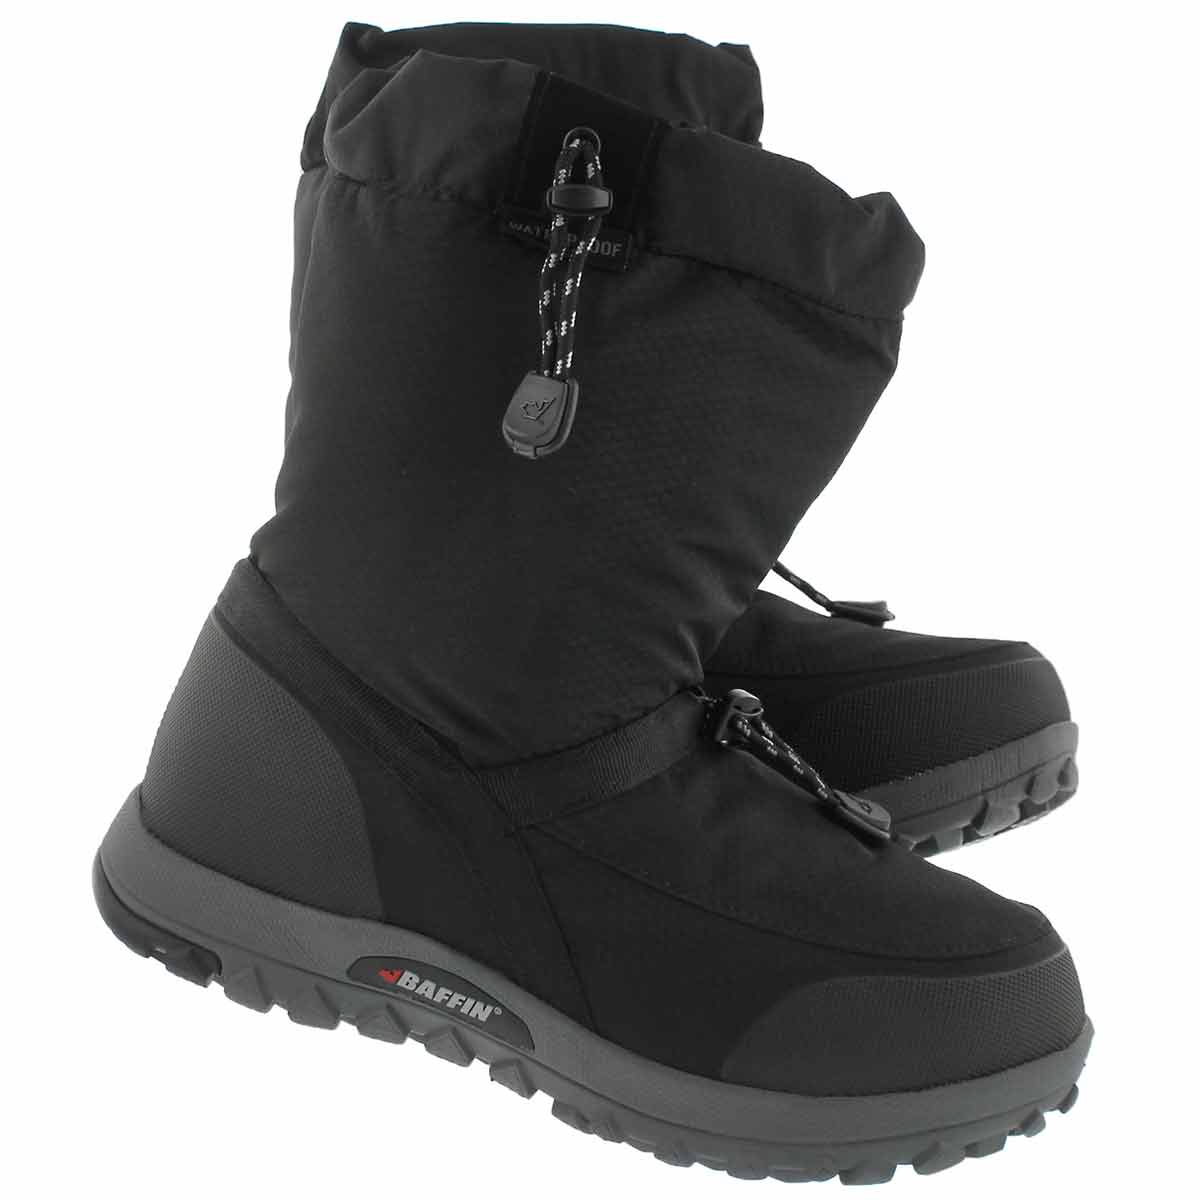 Lds Ease black wtpf pull on winter boot